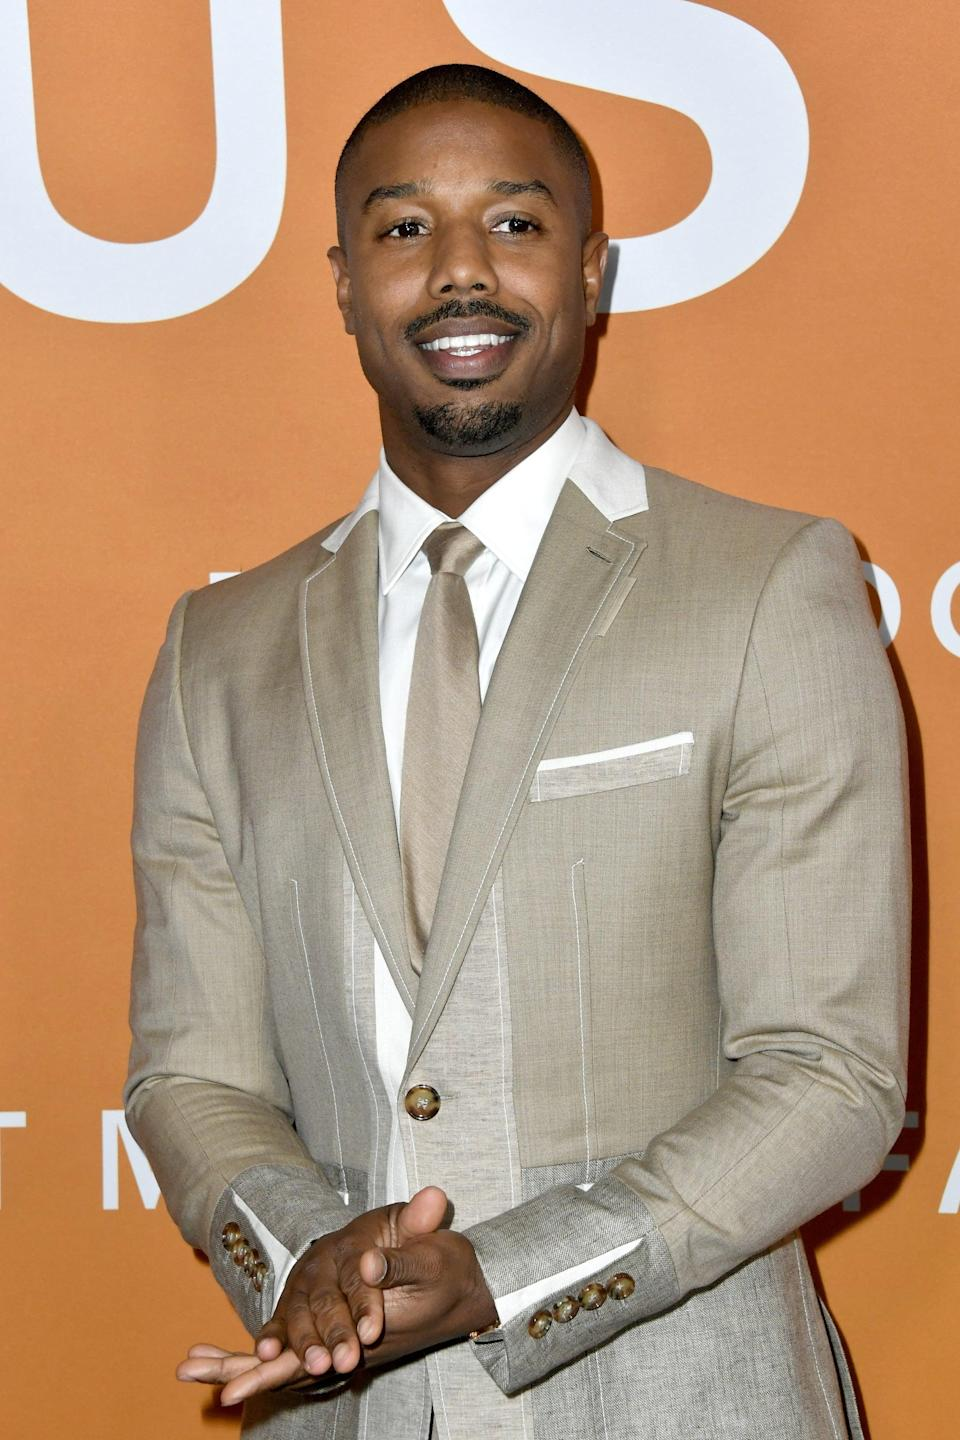 "<p>Currently, Lori is dating <a href=""https://www.popsugar.com/celebrity/michael-b-jordan-people-sexiest-man-alive-2020-47980333"" class=""link rapid-noclick-resp"" rel=""nofollow noopener"" target=""_blank"" data-ylk=""slk:People's Sexiest Man Alive""><strong>People</strong>'s Sexiest Man Alive</a>. Romance rumors first began floating around when they were spotted hanging out over the holidays this past November, and in January 2021, <a href=""https://www.popsugar.com/celebrity/michael-b-jordan-lori-harvey-relationship-twitter-reactions-48100594"" class=""link rapid-noclick-resp"" rel=""nofollow noopener"" target=""_blank"" data-ylk=""slk:they made things Instagram official"">they made things Instagram official</a> by sharing corresponding posts on their feeds. Only time will tell if this is serious or not. </p>"